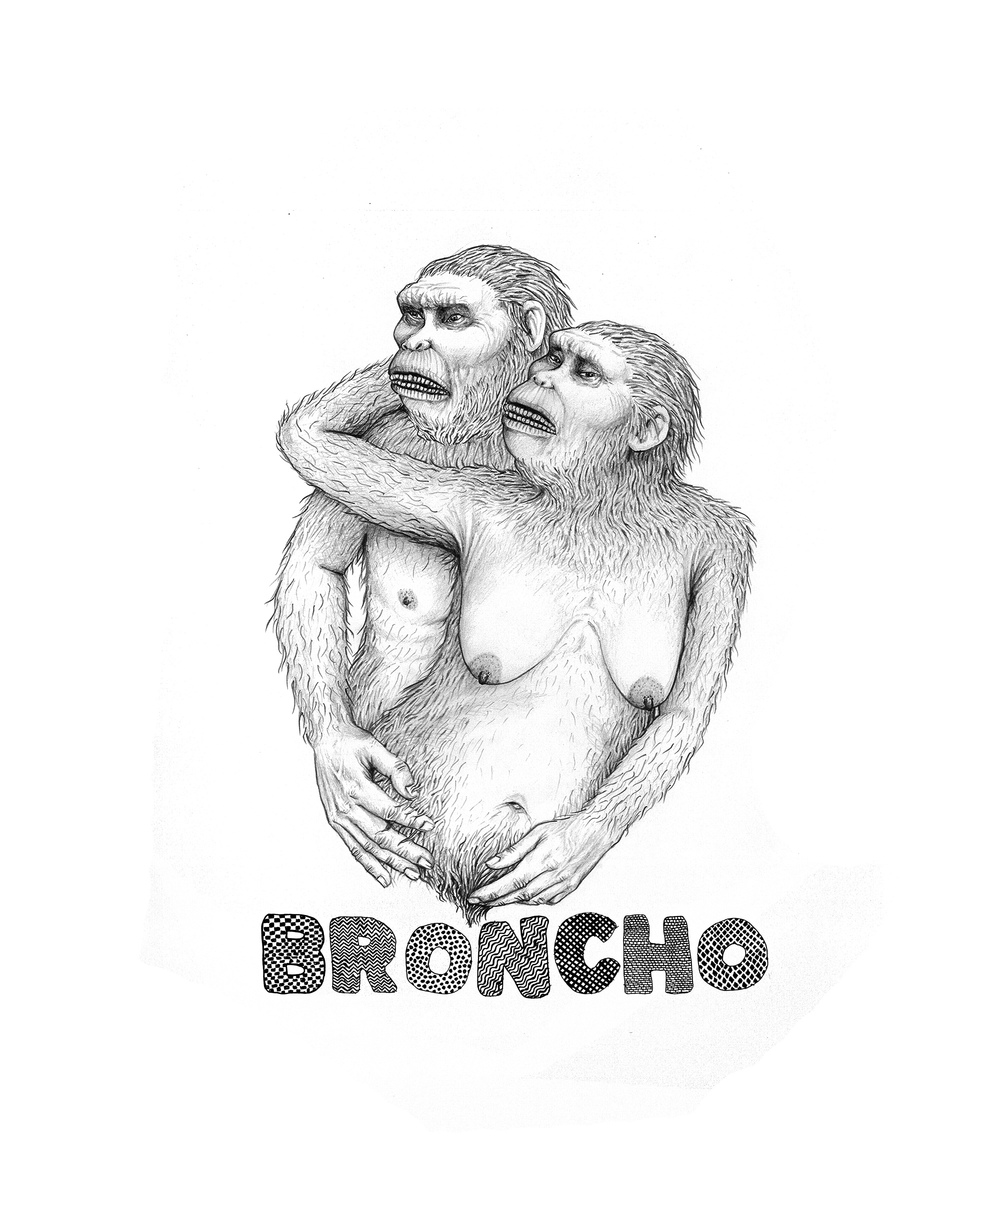 BRONCHO SHIRT v3 (small).jpg